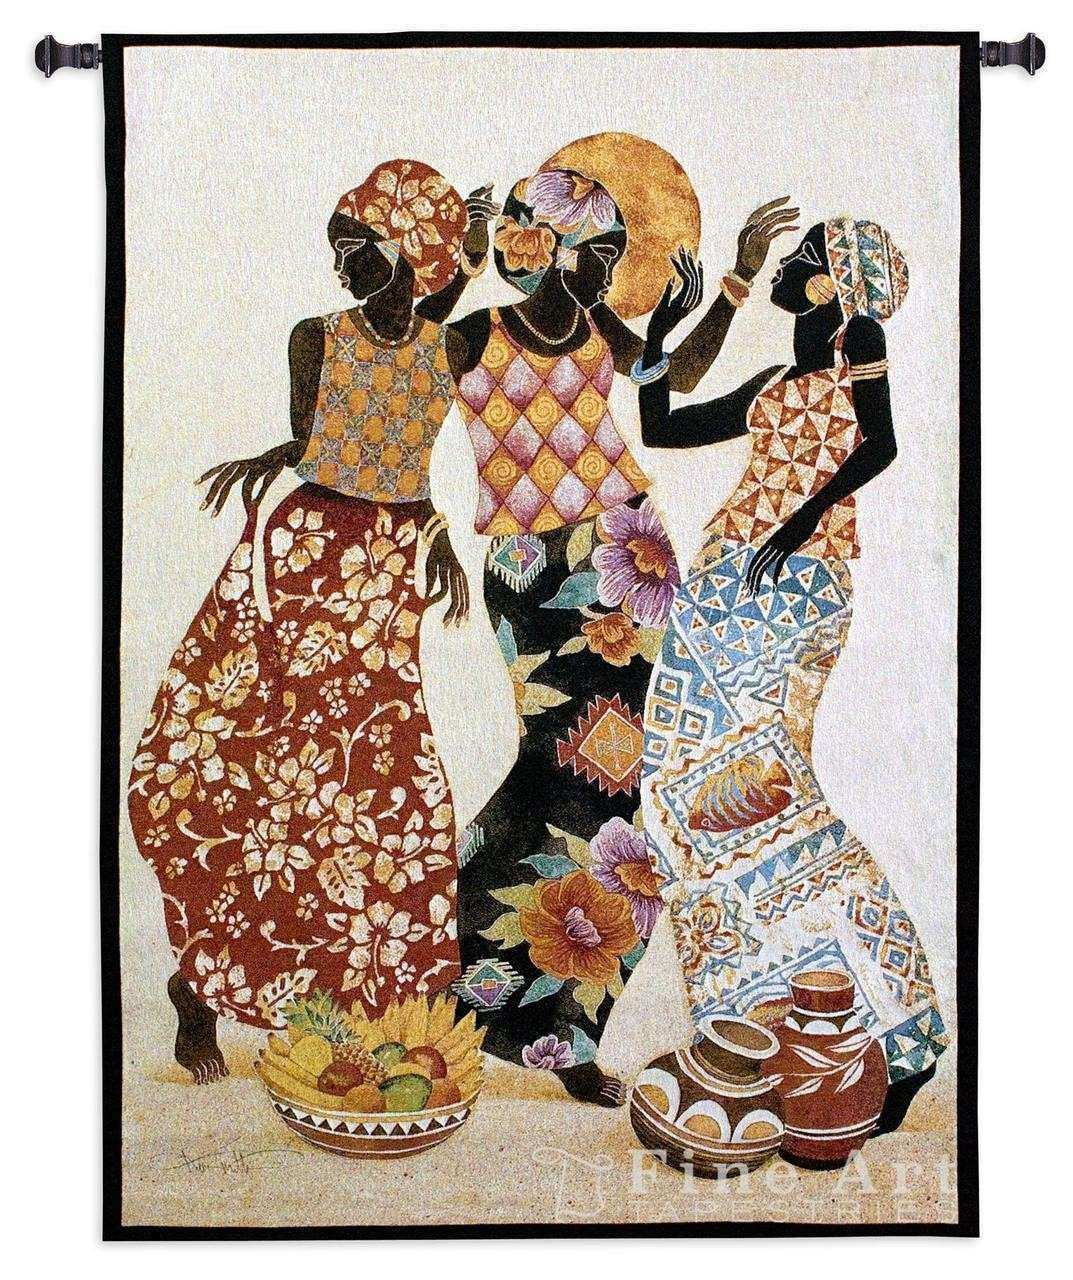 Jubilation African Tapestry Wall Hanging Ethnic Designs